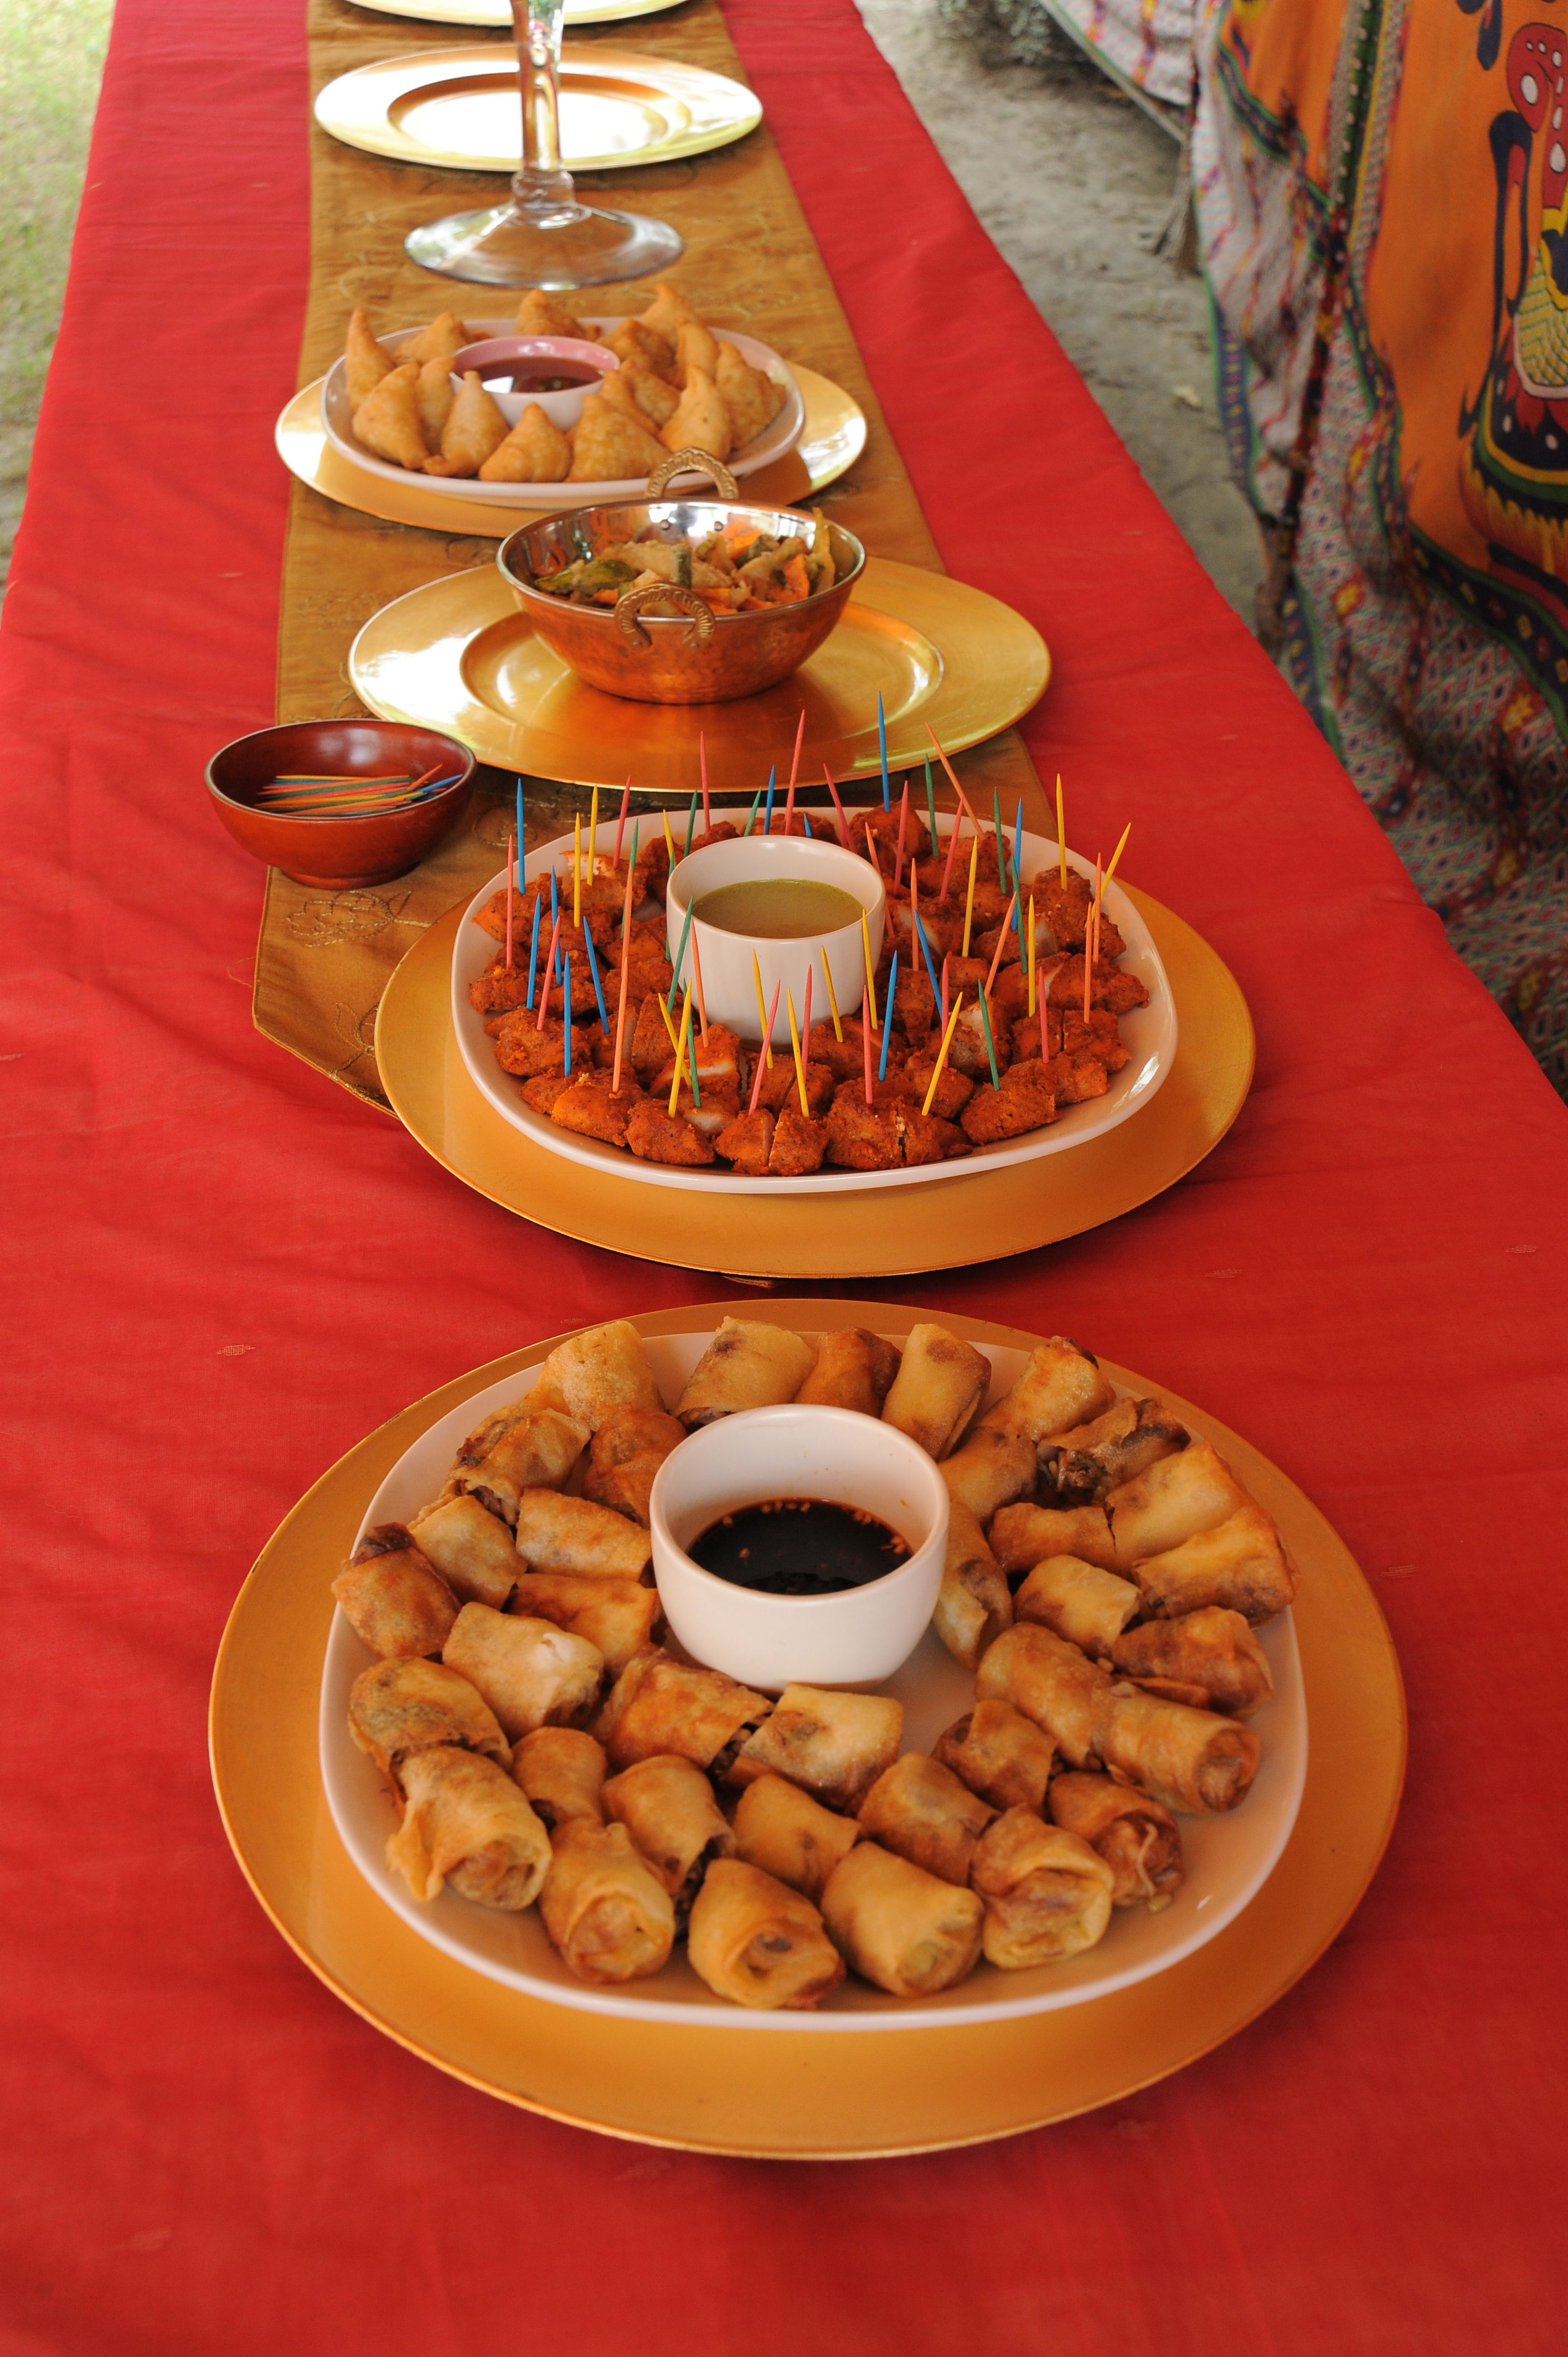 Bollywood Party Food Ideas Ugh Once Again No Link To The Content Wedding Food Catering Wedding Food Eid Party